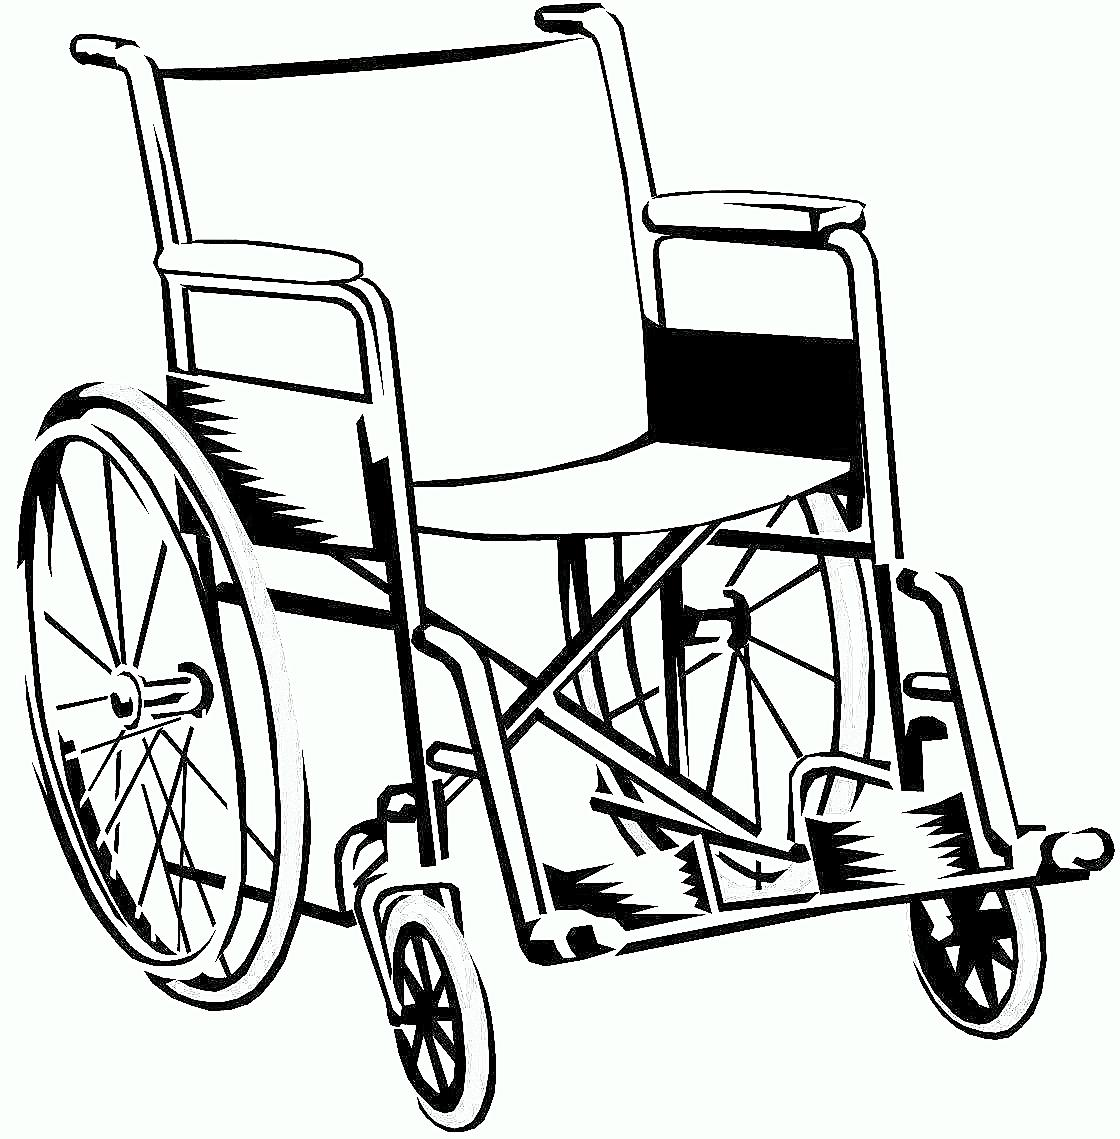 Wheel chair drawing at free for personal for How to motorize a wheelchair